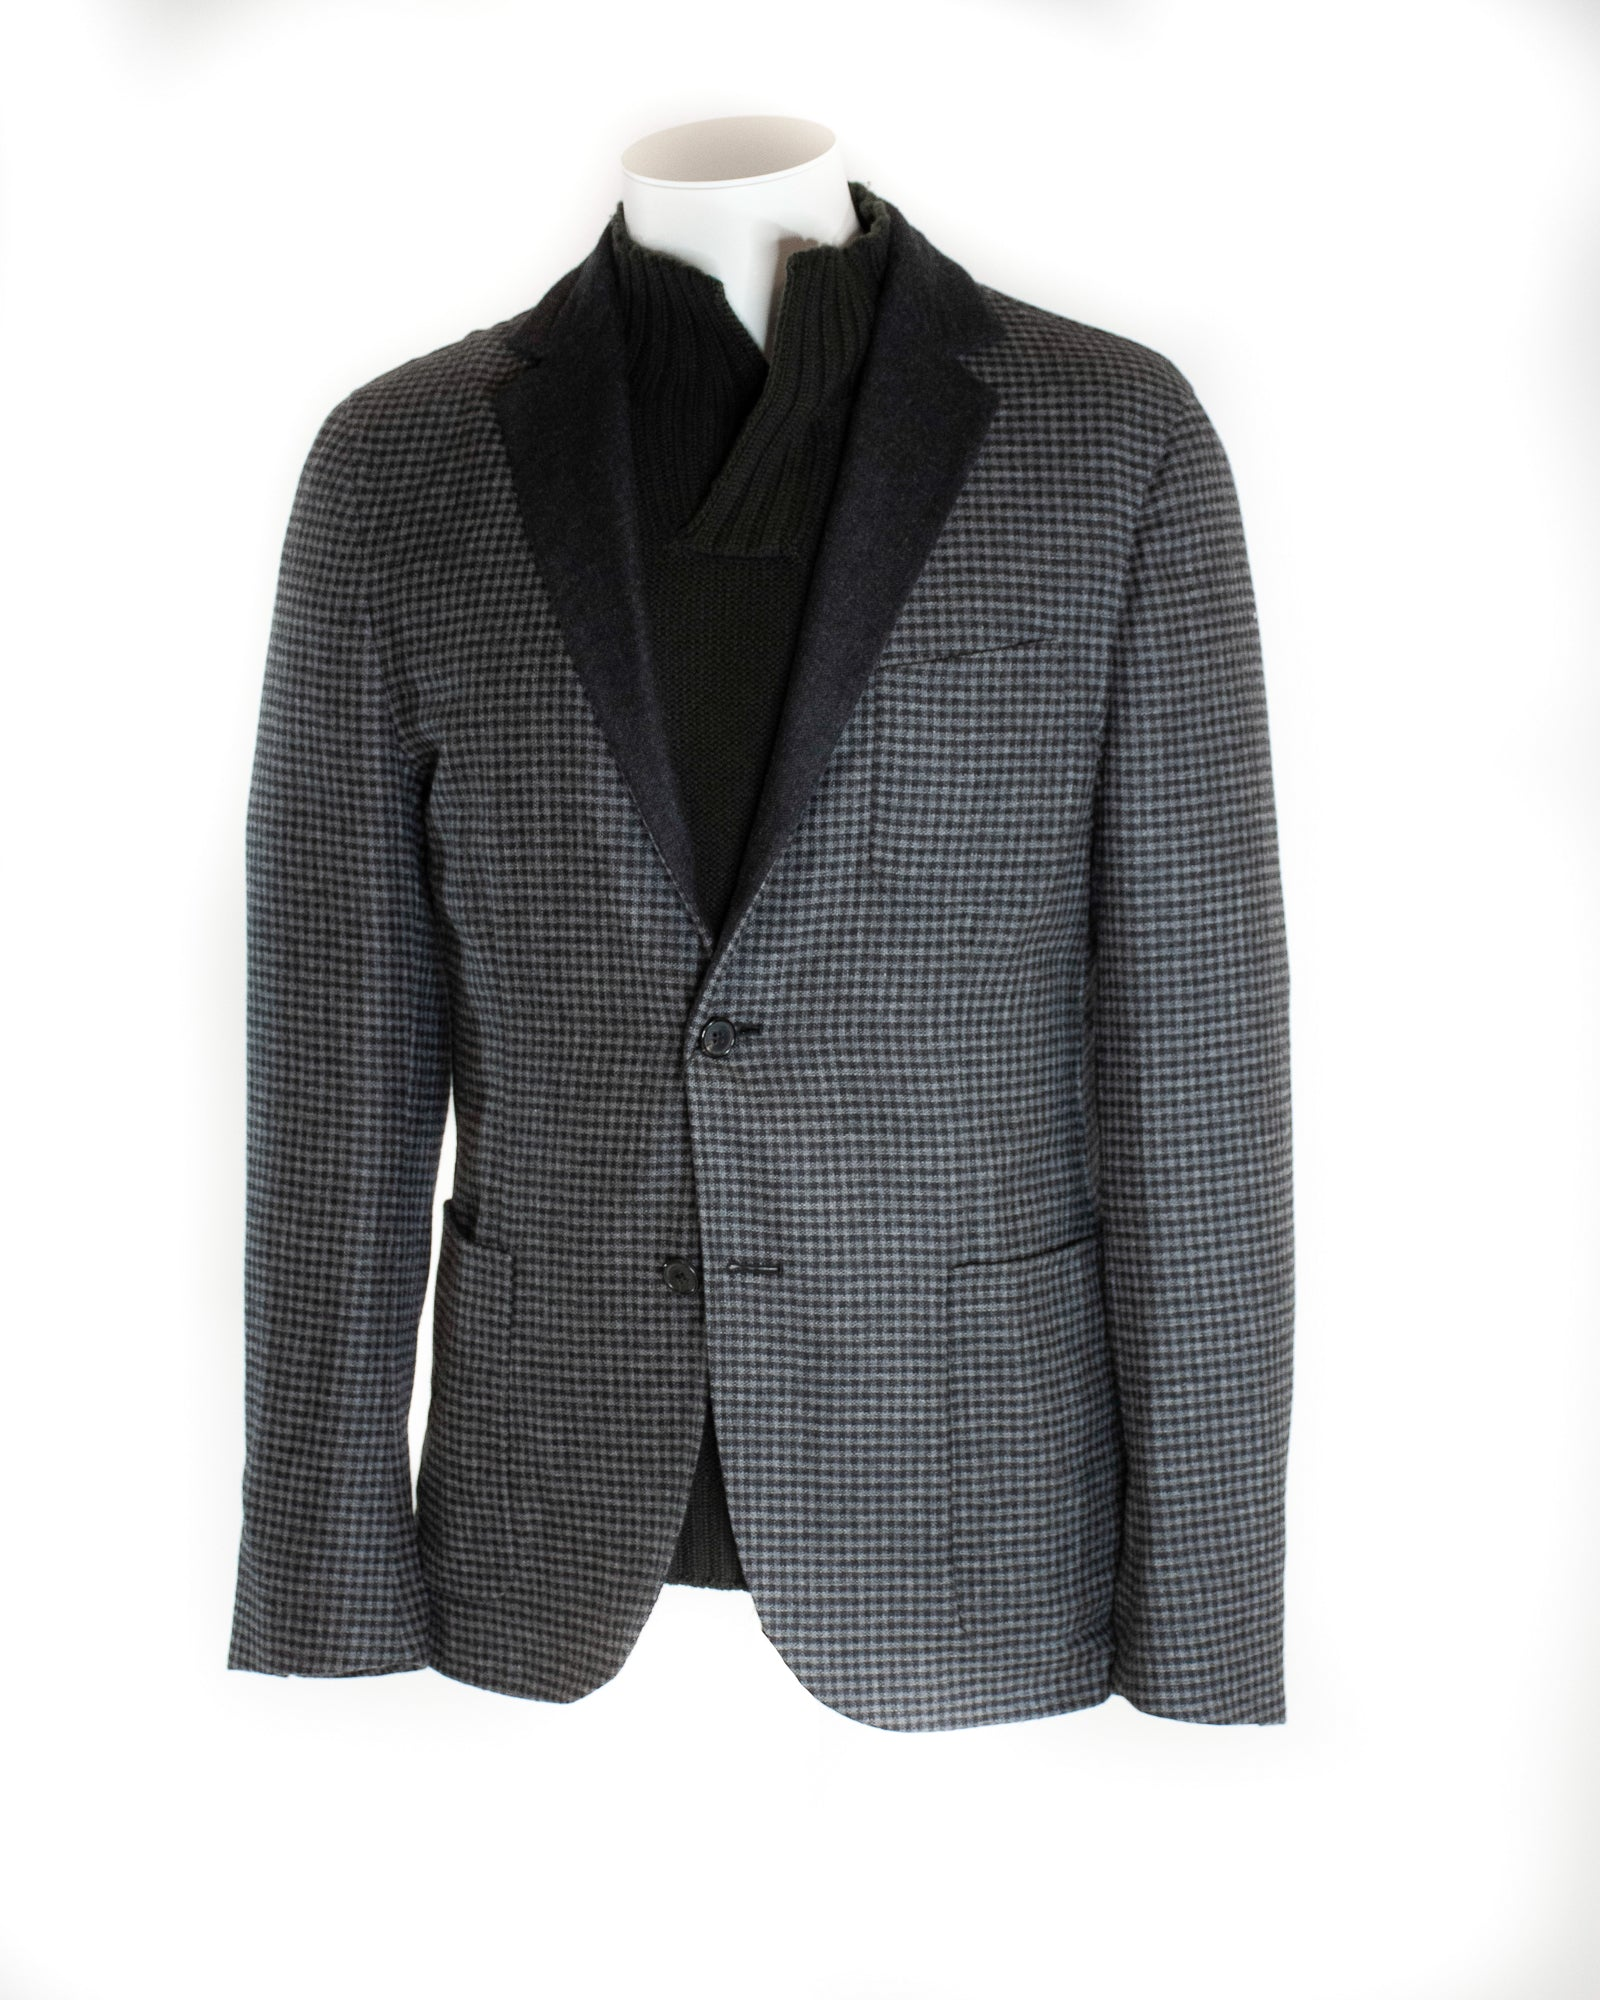 CORNELIANI UNLINED CARDIGAN JACKET